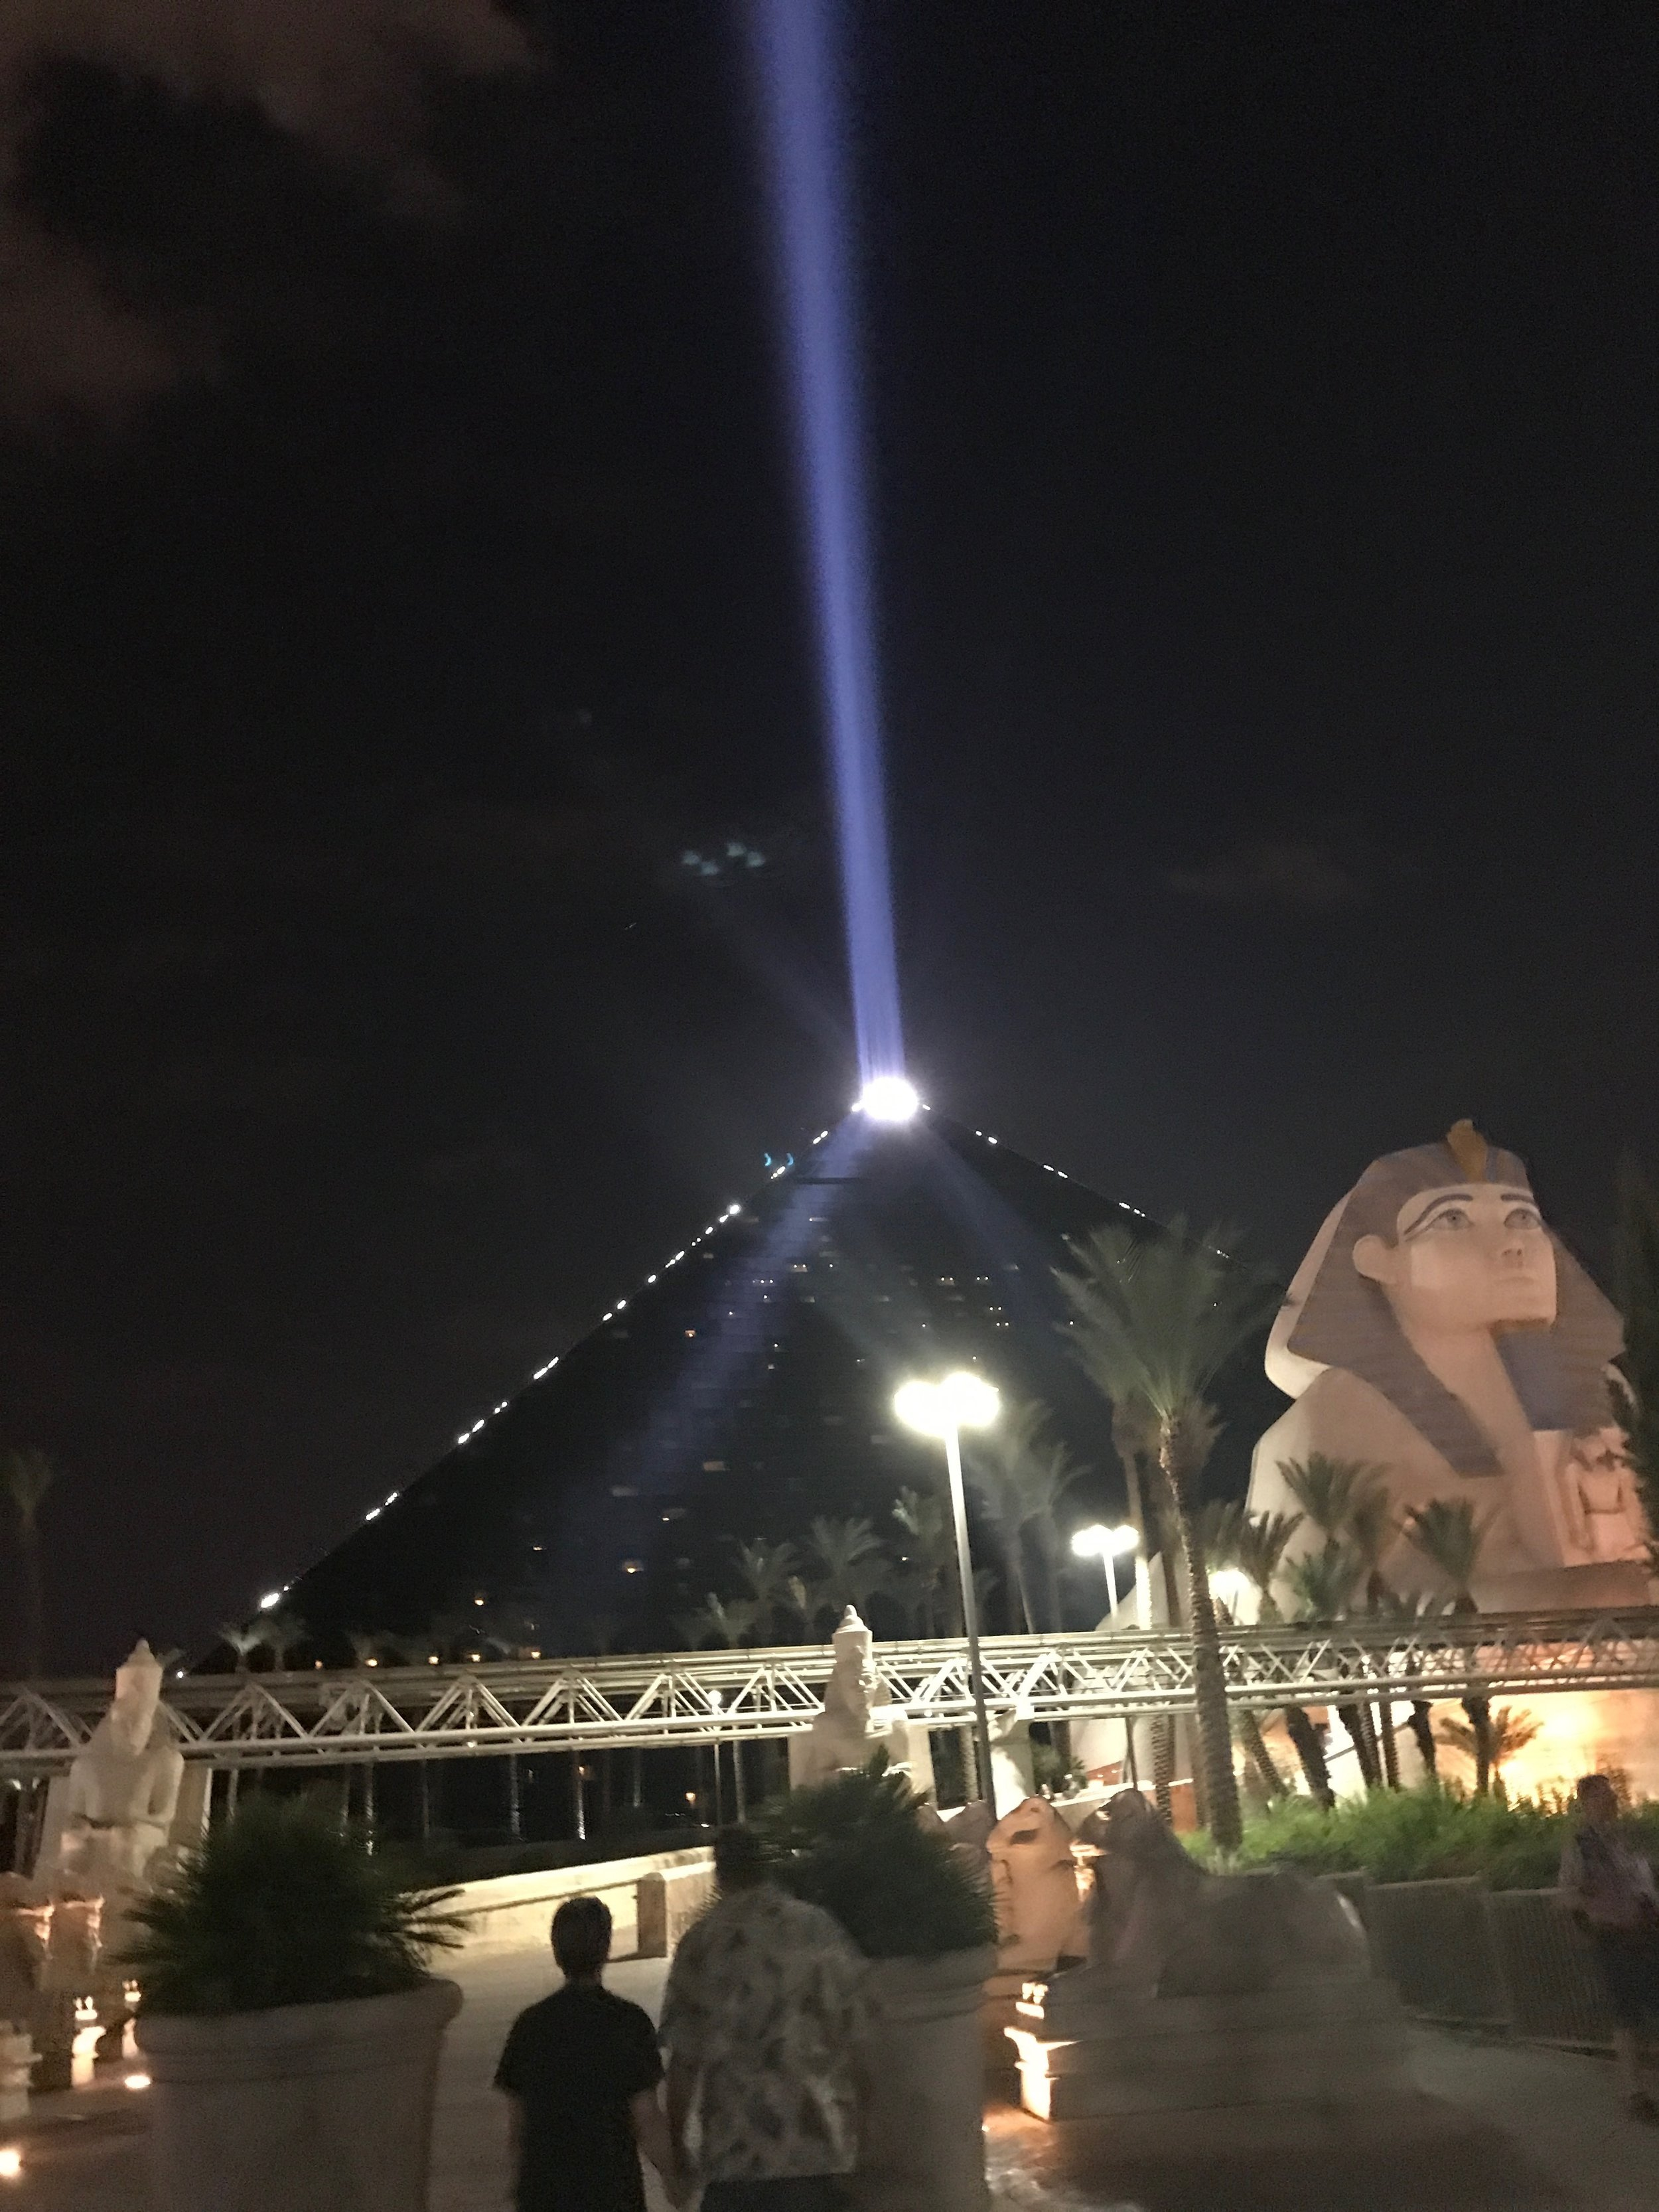 The Luxor at night - you can see the light all the way across the strip!